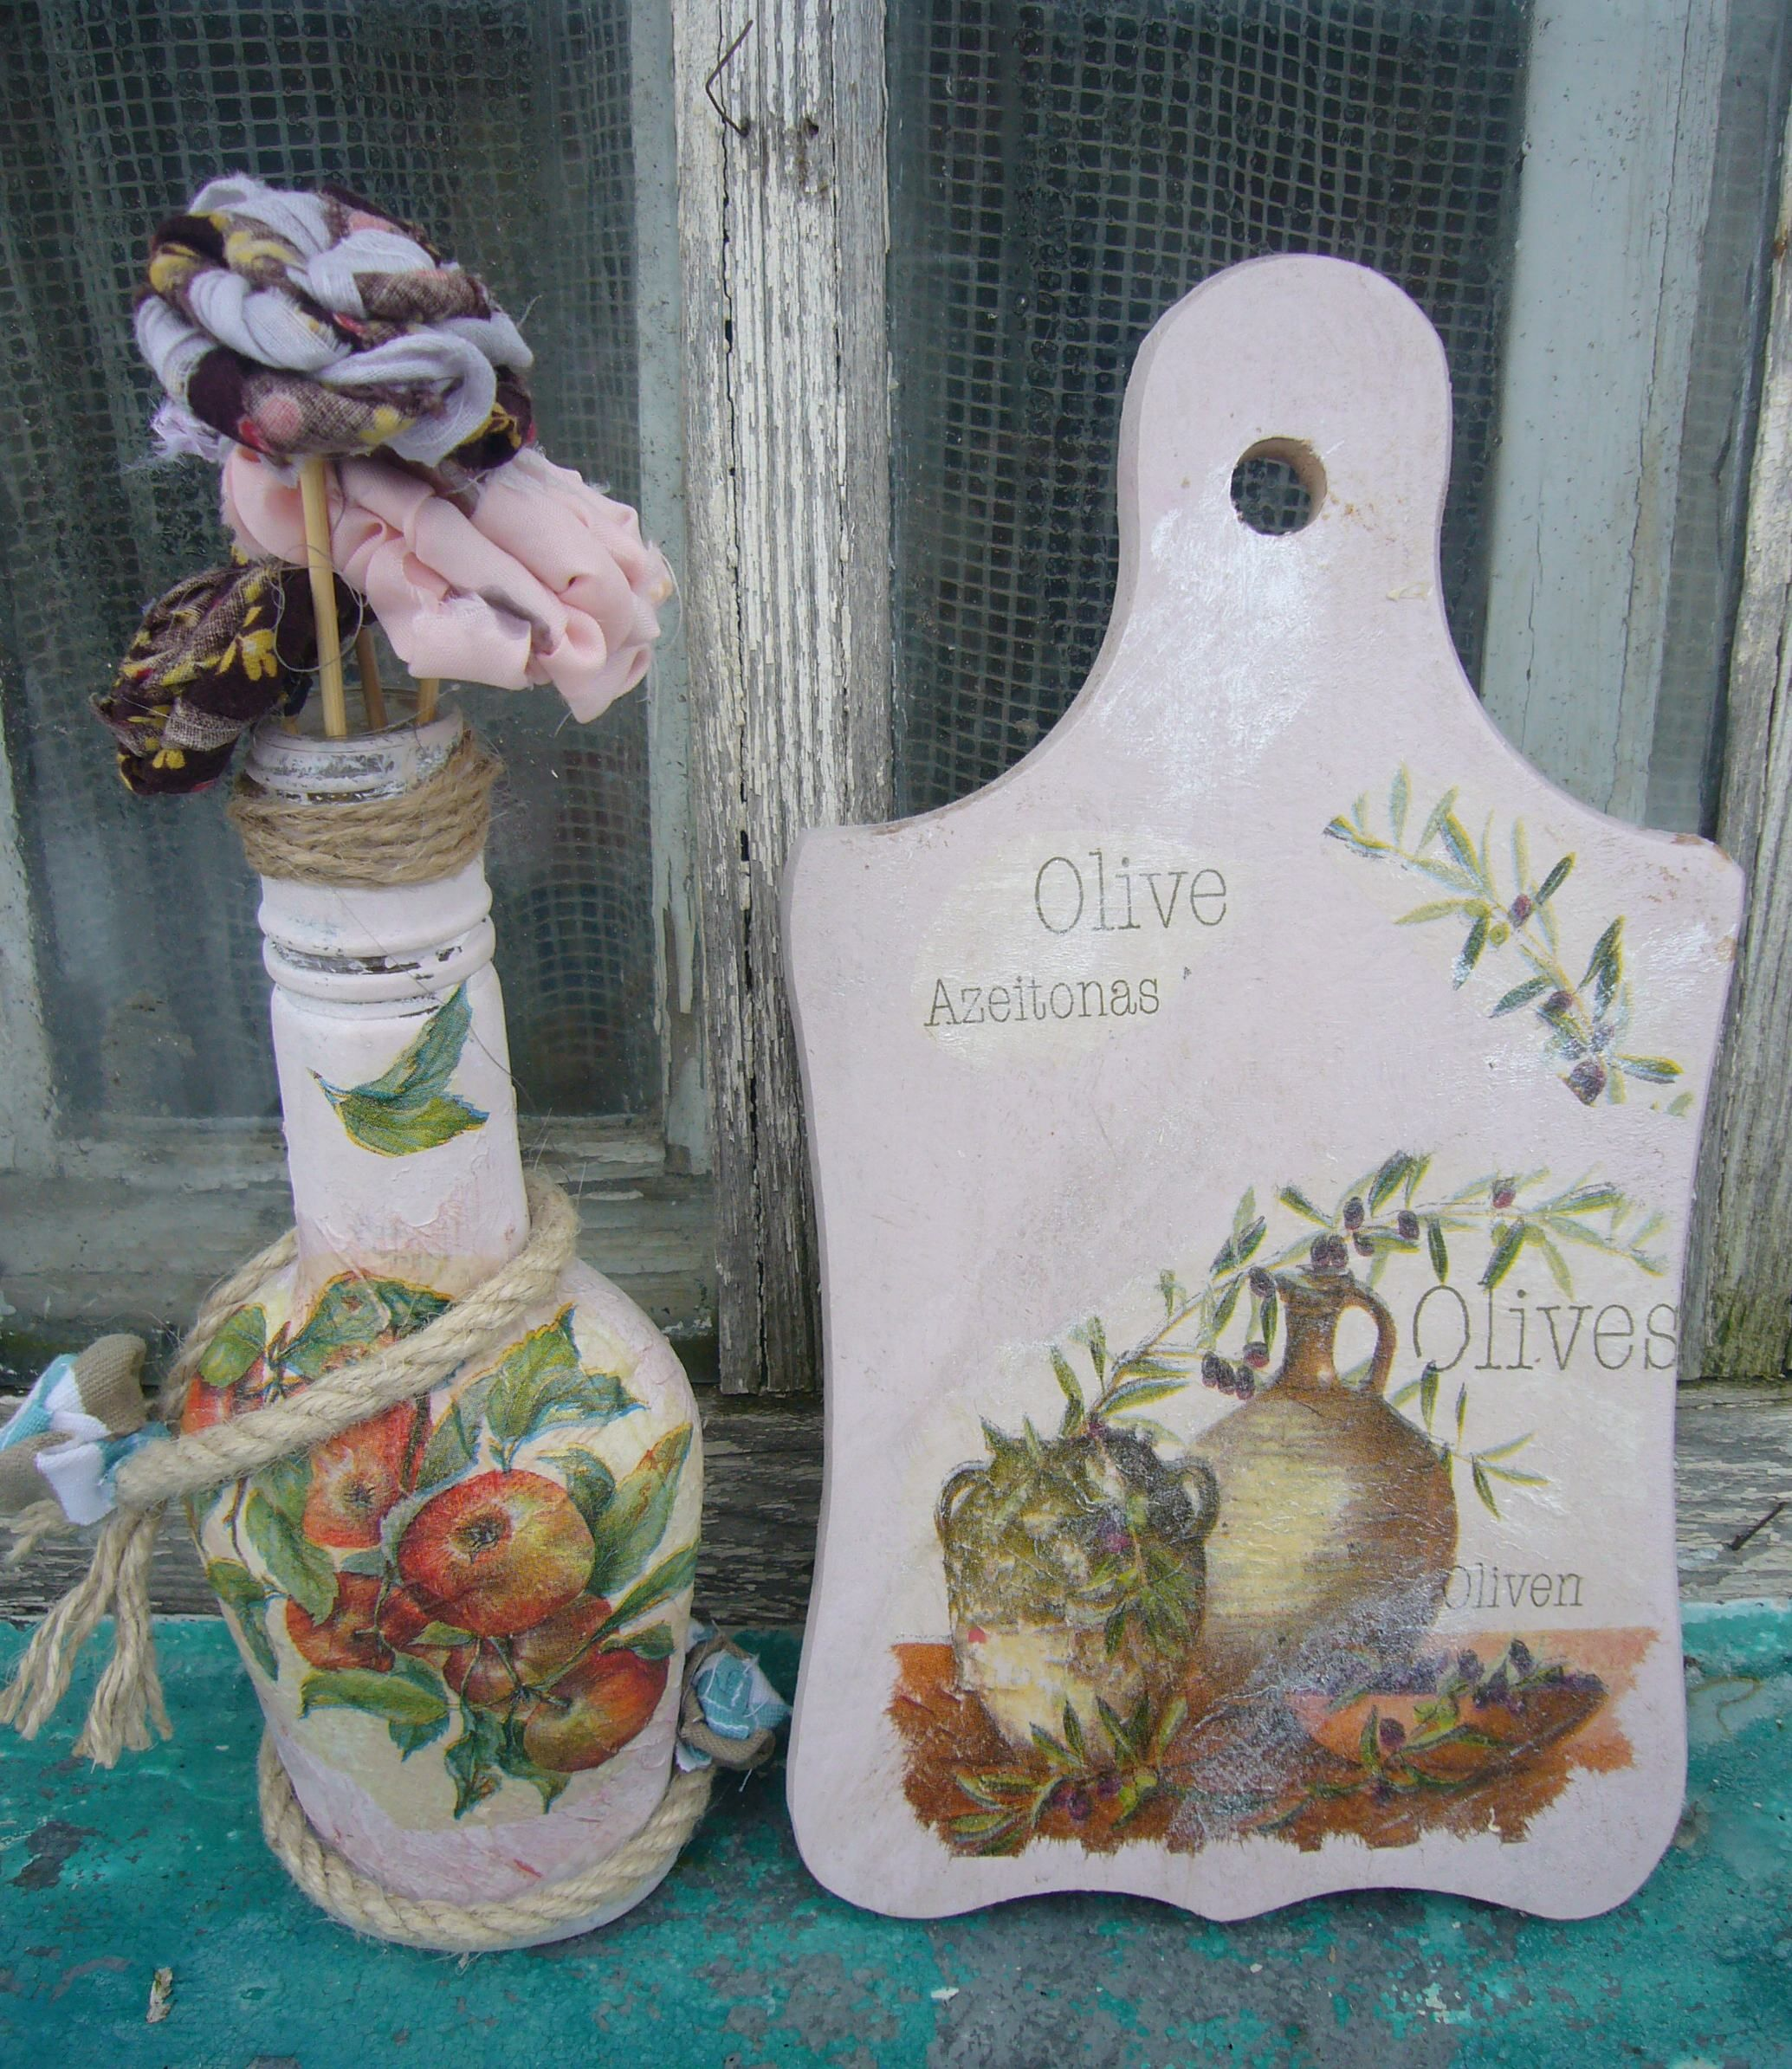 kitchen crafts glass and wood decoupage ideas decoupage glass jars for craft projects kitchen crafts glass and wood decoupage ideas diy